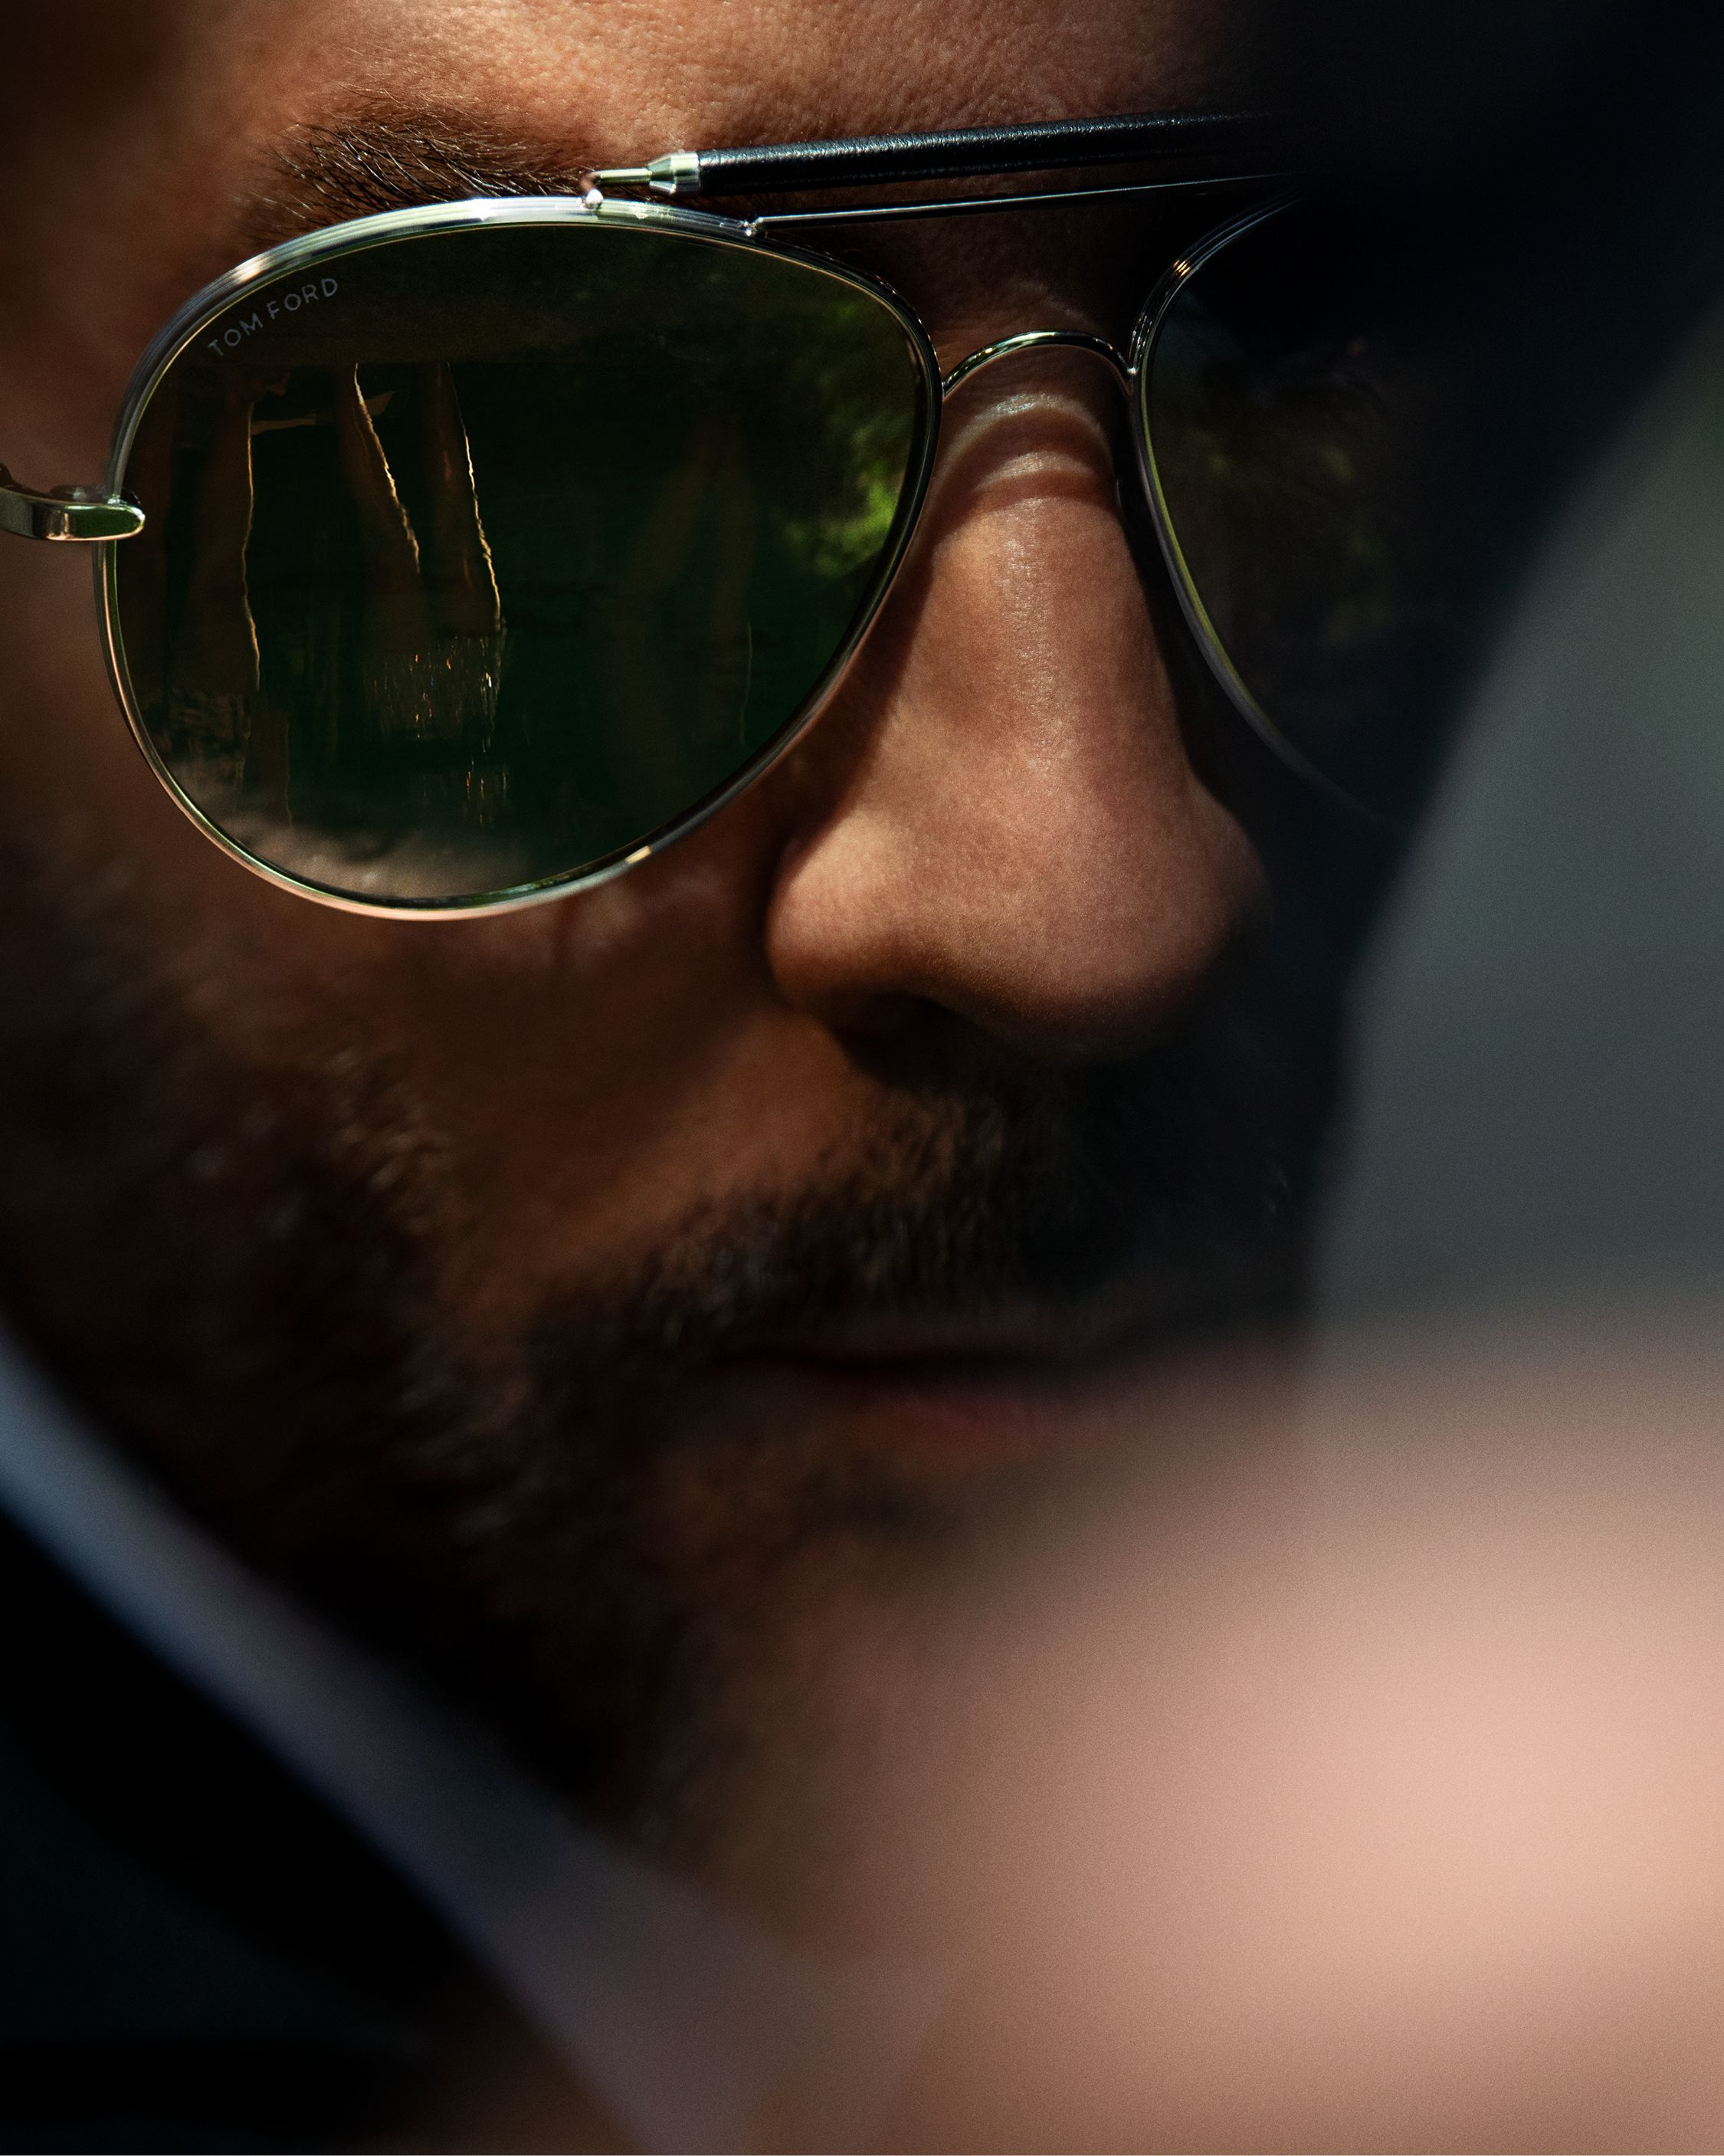 e5a6b94605a Discover the exclusive TOM FORD Private Collection featuring 3 new styles  of Sunglasses and Optical Frames.  TOMFORD  TFPRIVATECOLLECTION